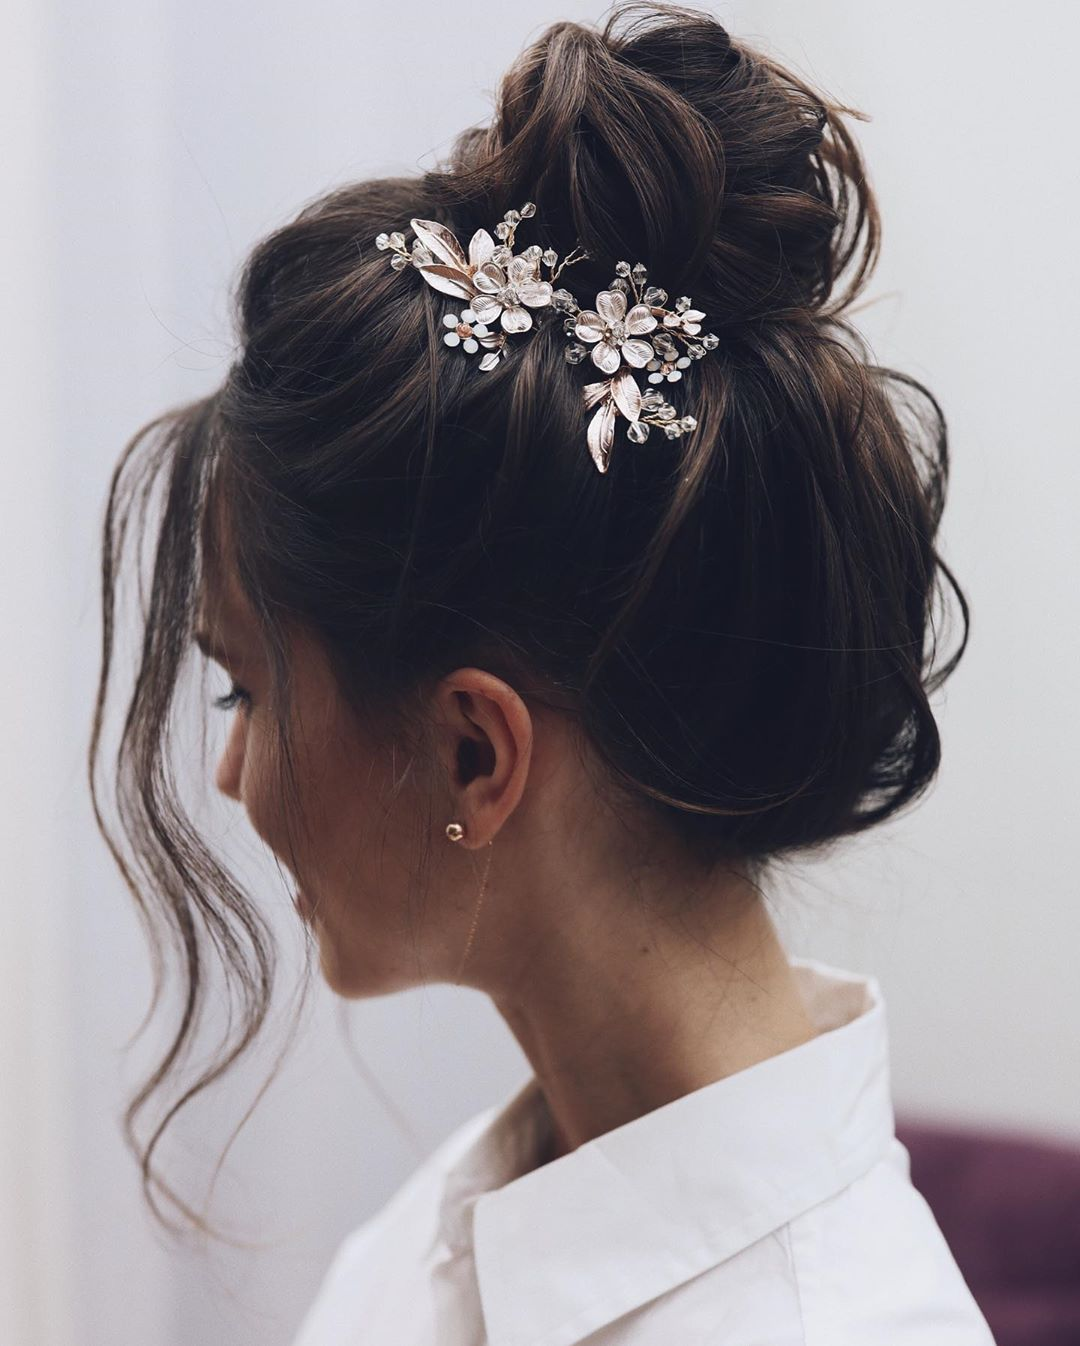 Bun Hairstyle for a Small Face